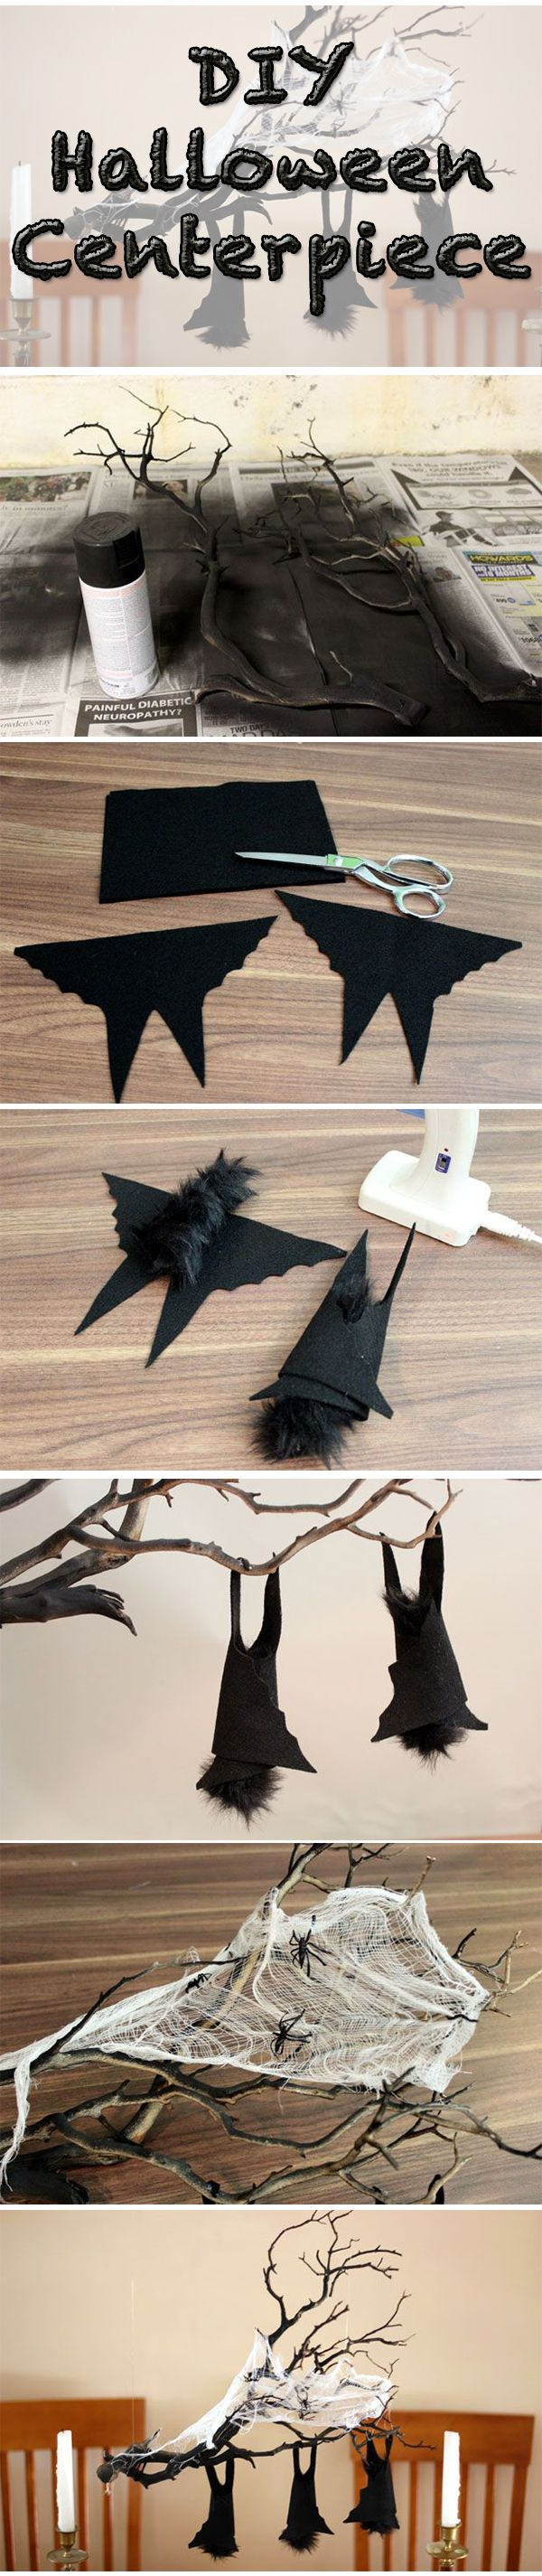 Hanging felt bats on a dry twisted brand make the perfect Halloween centerpiece.